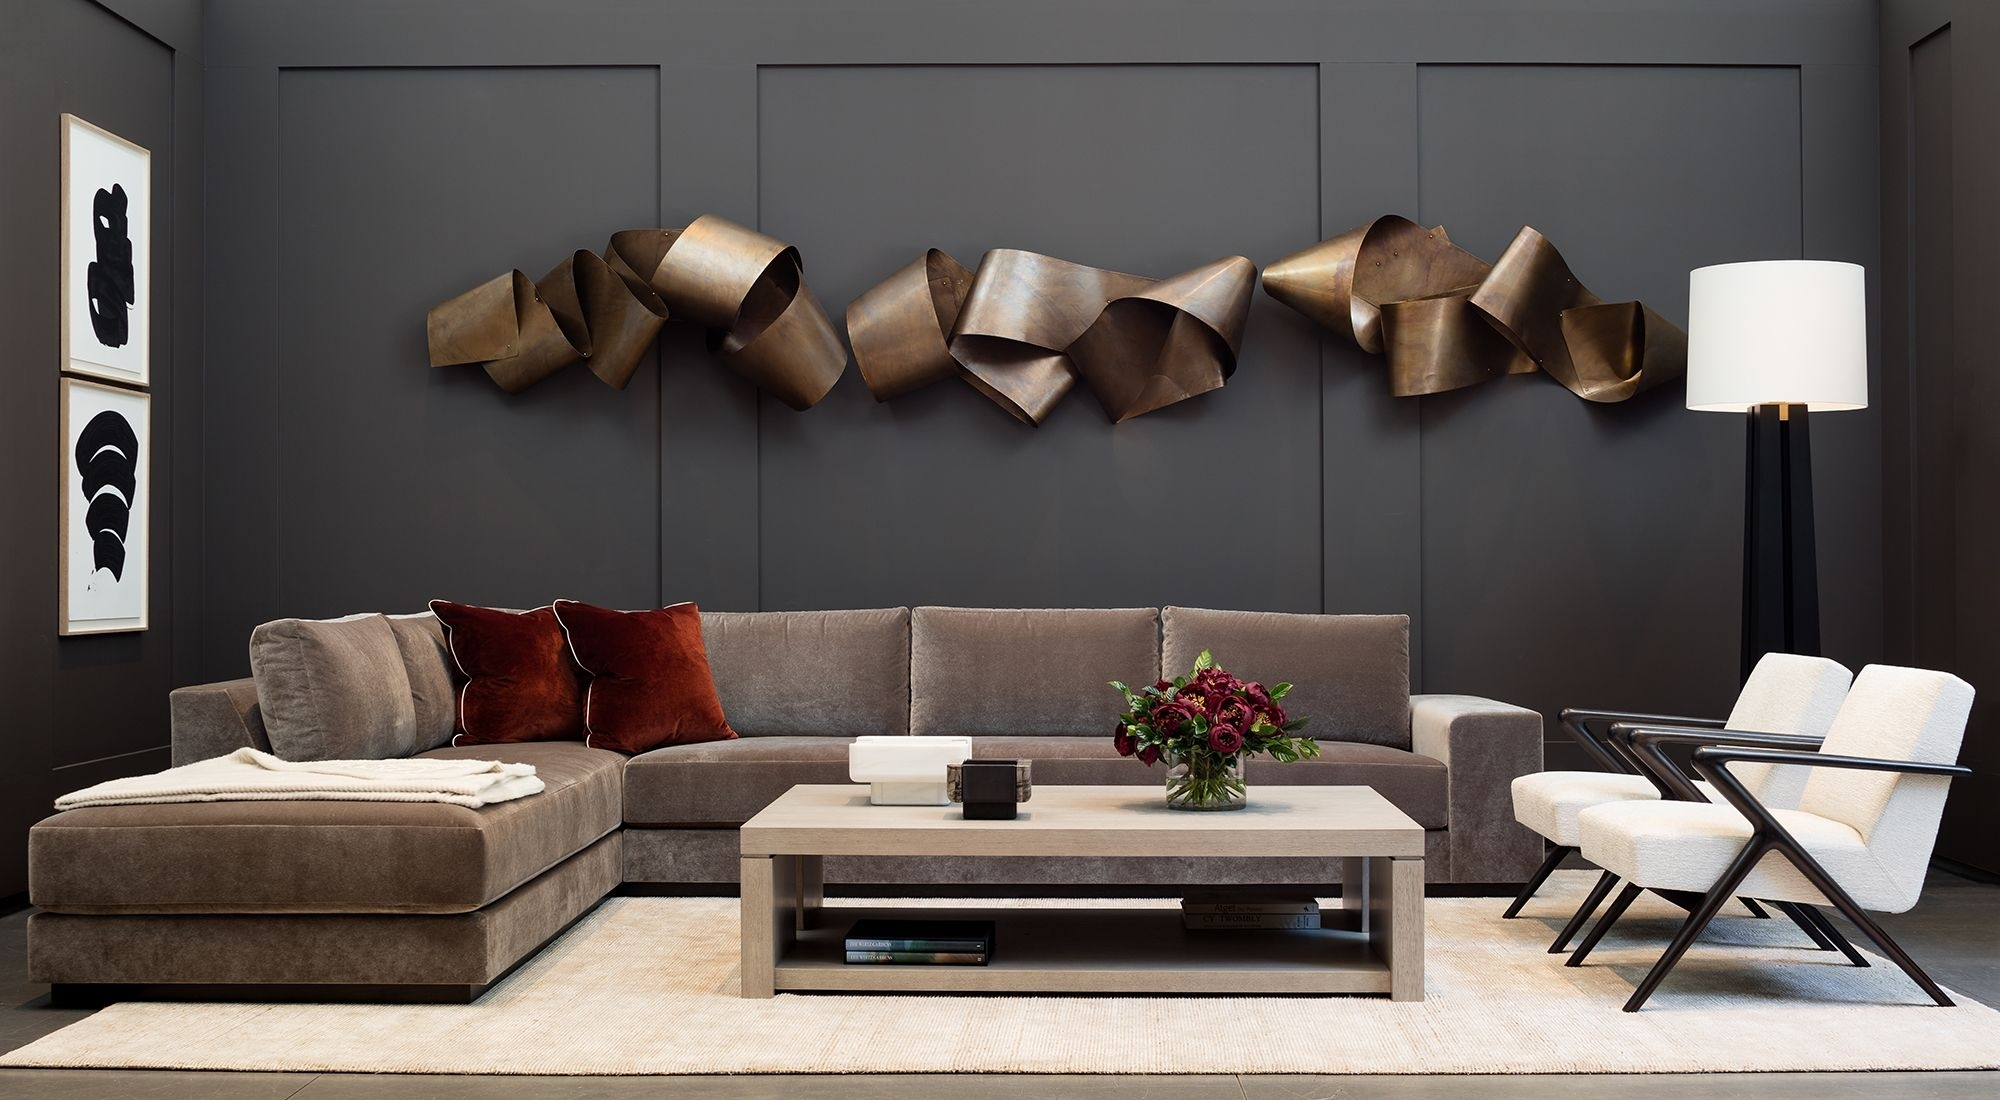 Holly Hunt | Modern Metal Wall Sculpture In Contemporary Living Room inside Modern Metal Wall Art (Image 6 of 20)